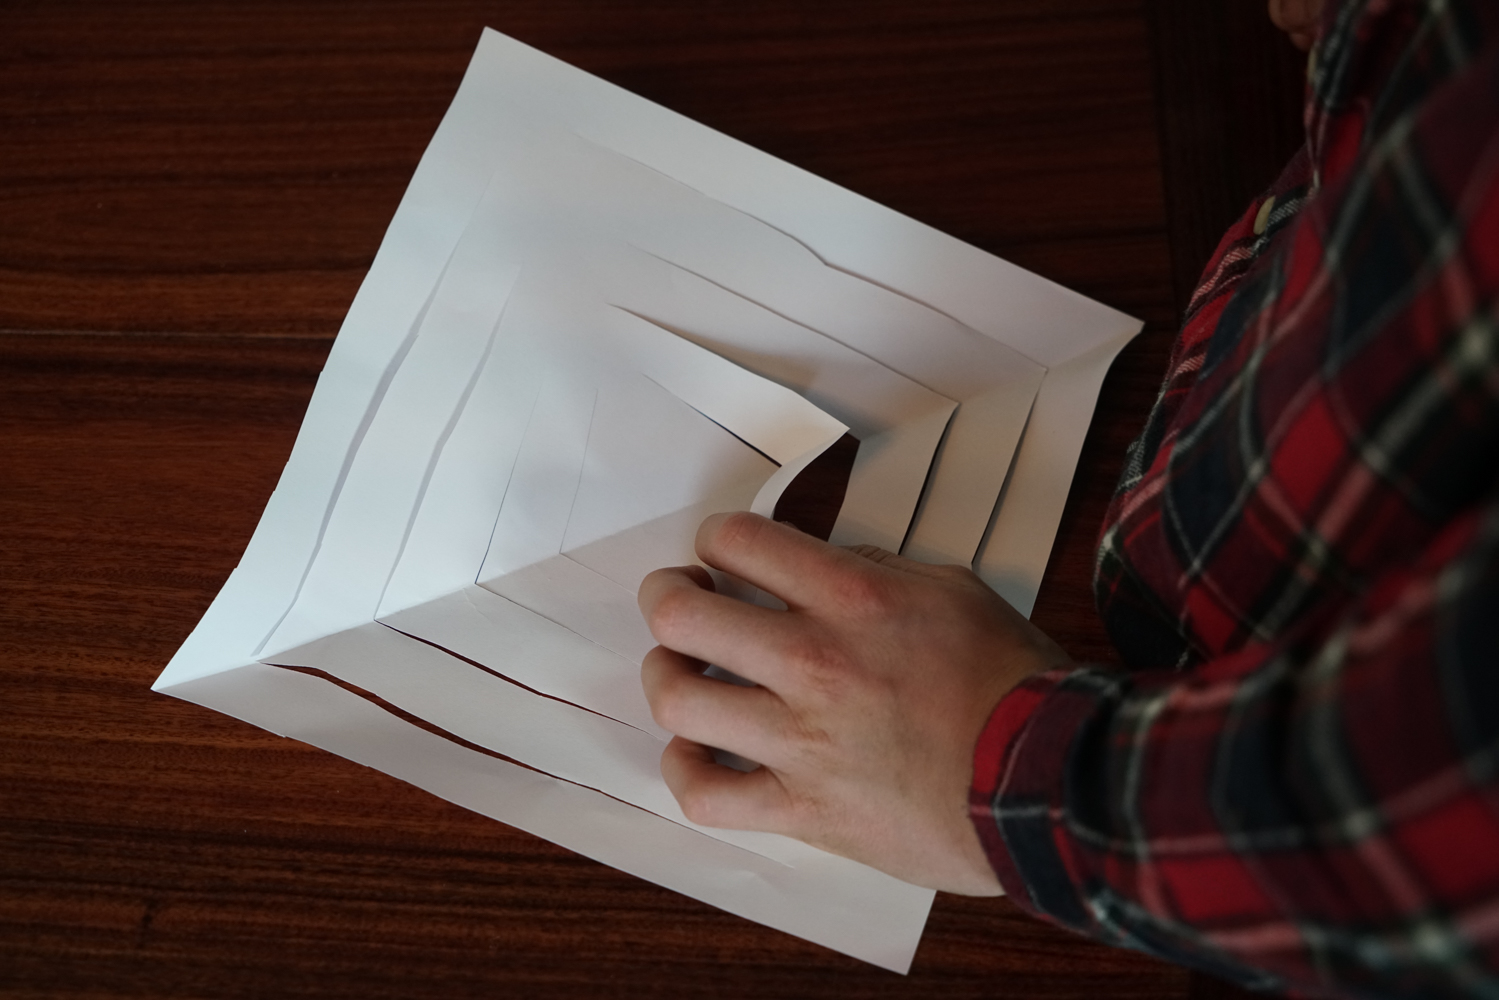 how to make scissors out of paper